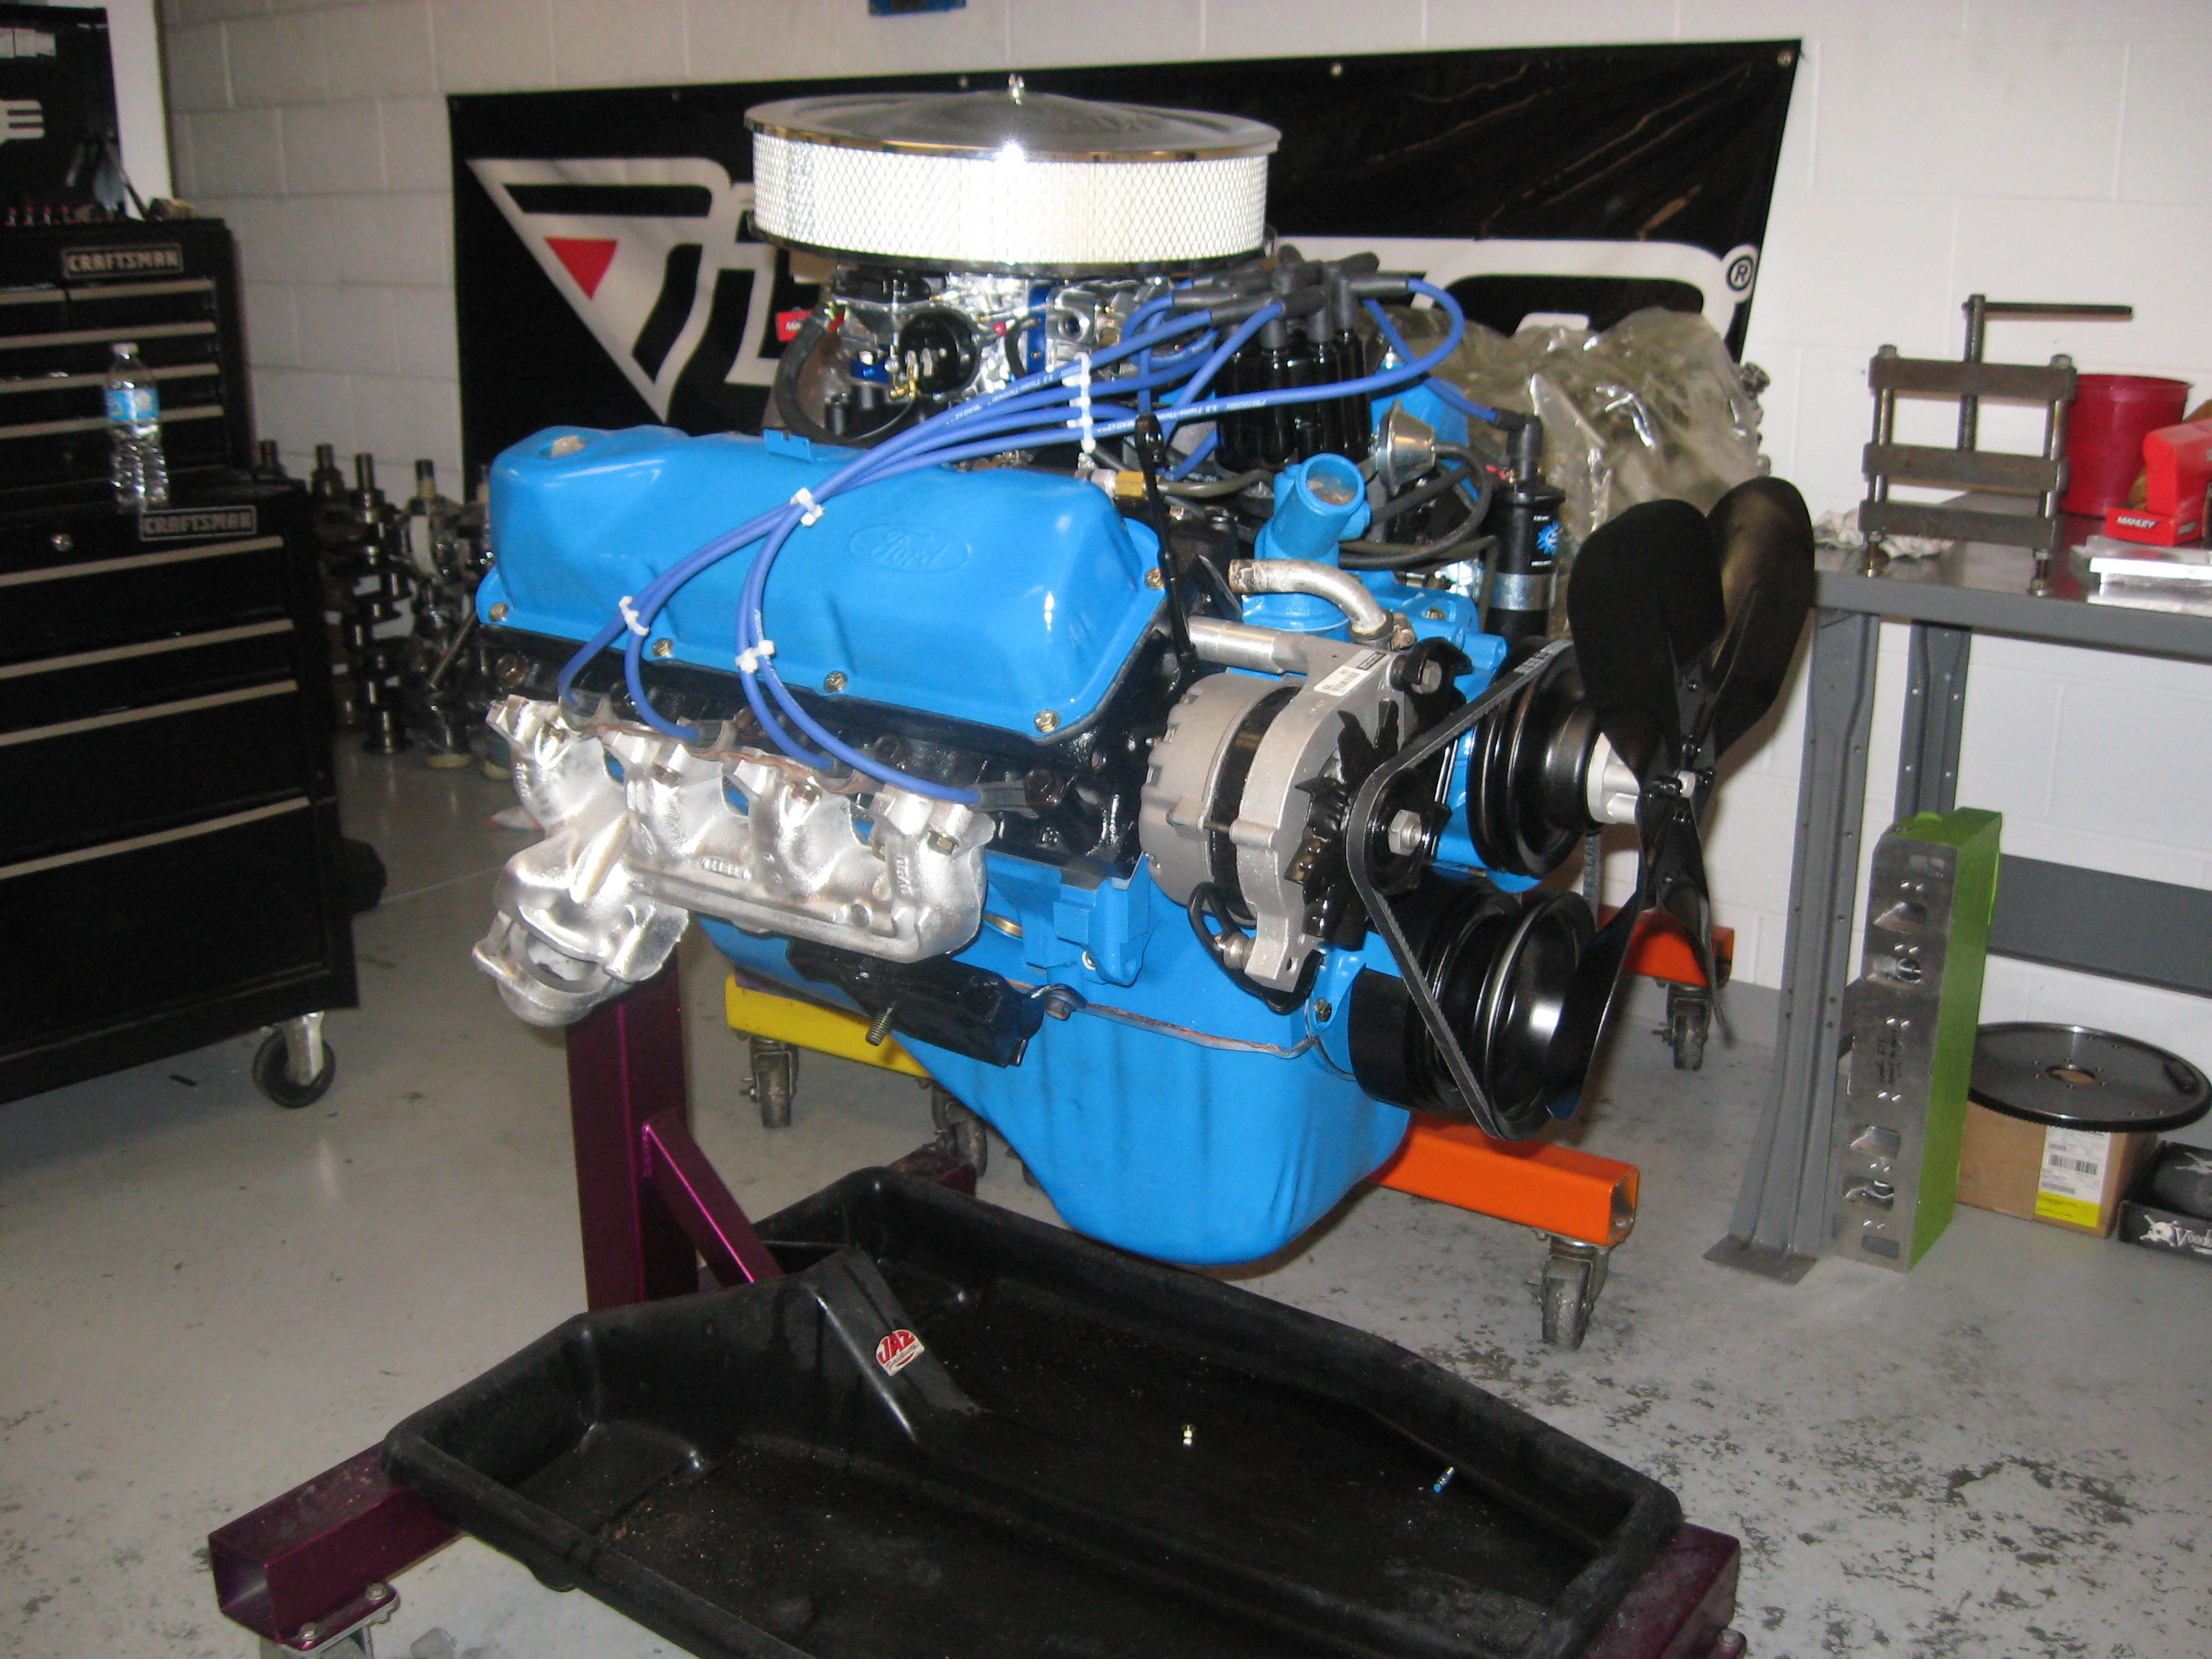 mondello com - Ford 400M - New life for an old truck